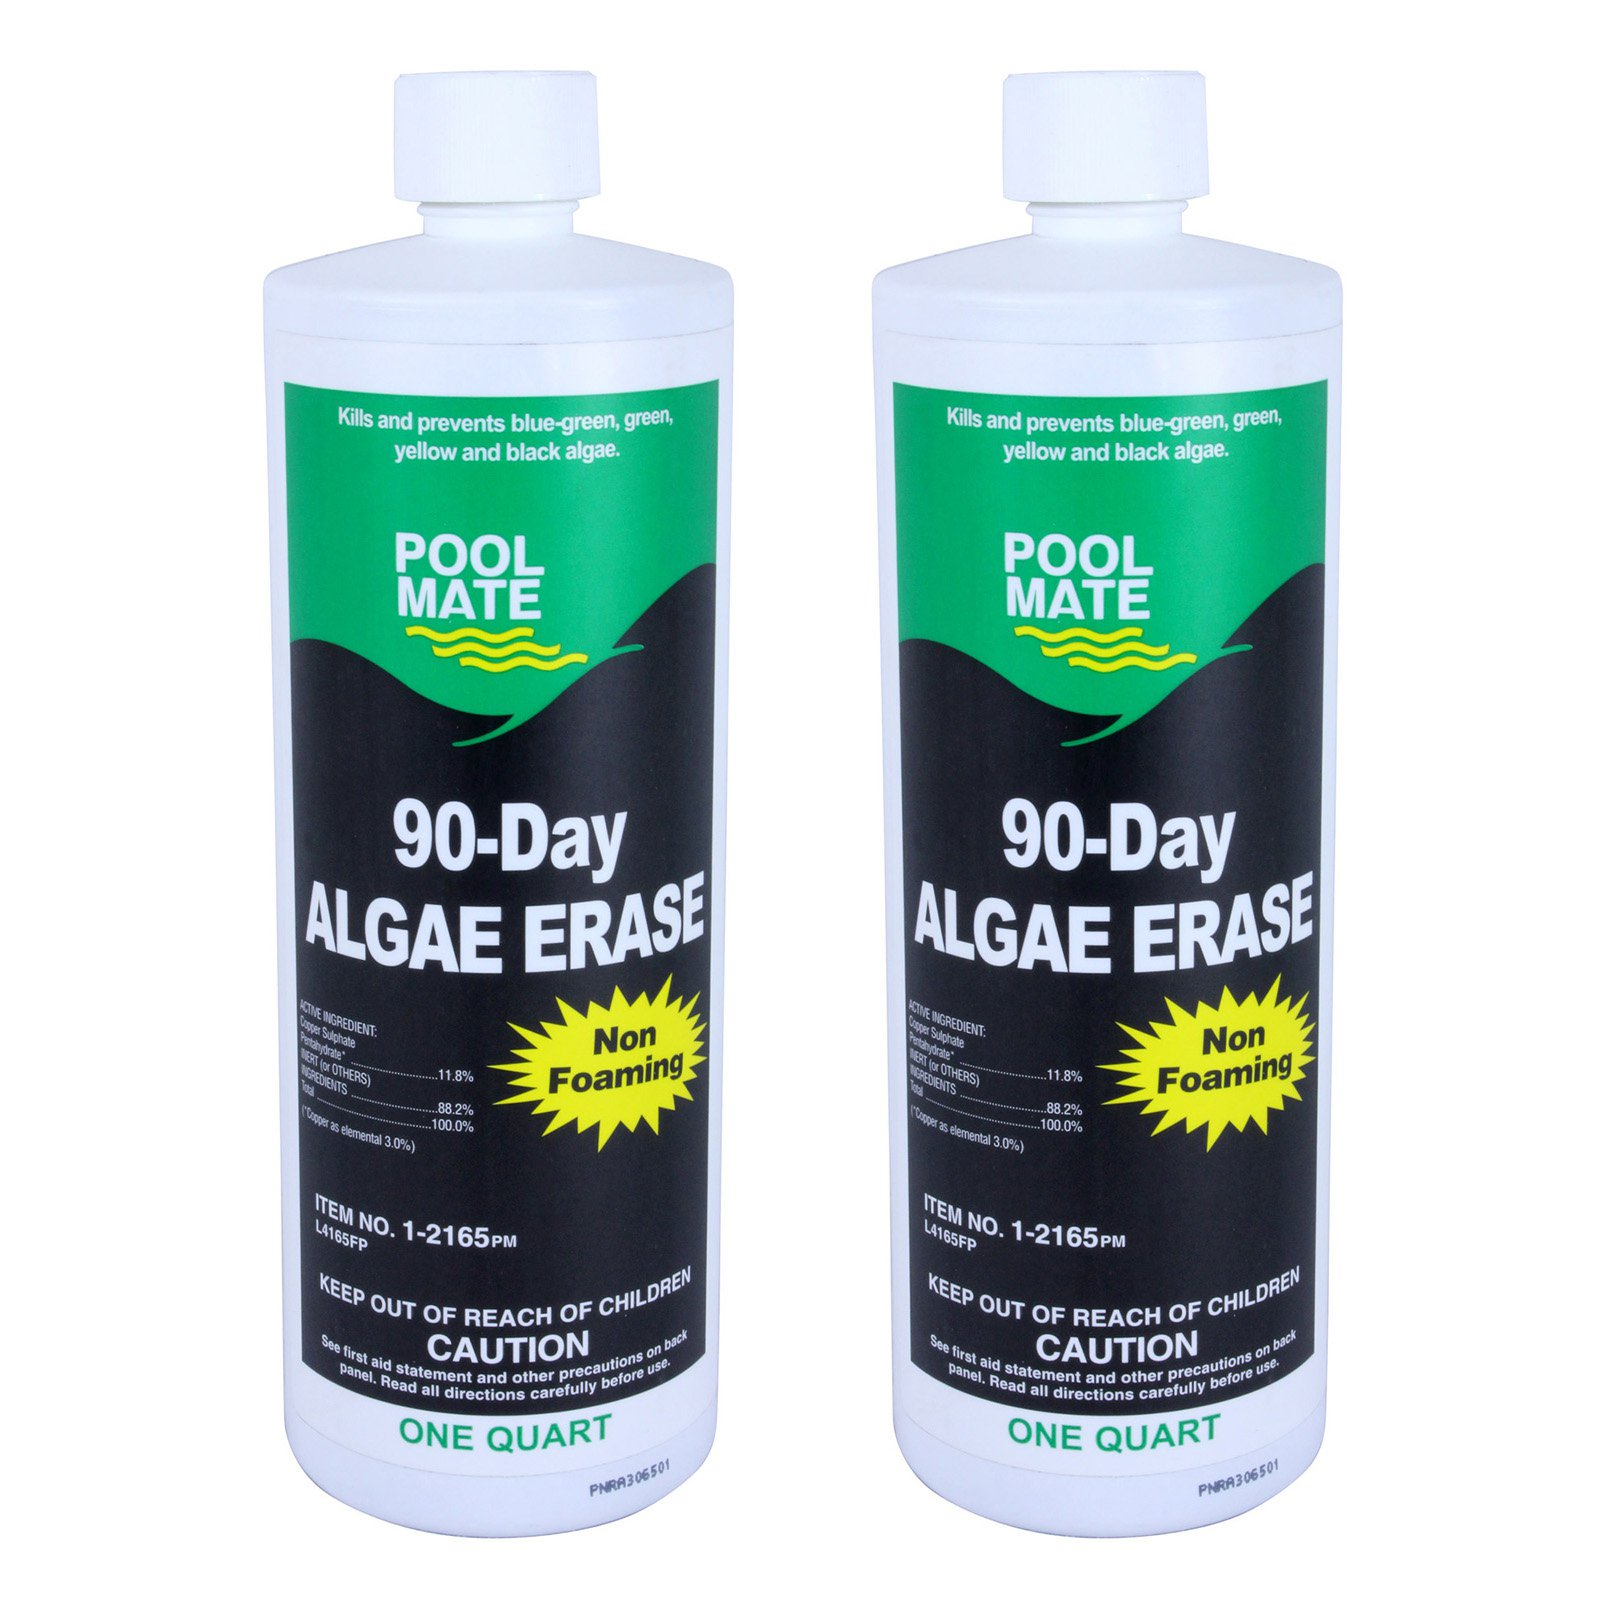 Pool Mate 90-Day Algae Erase Algaecide for Swimming Pools